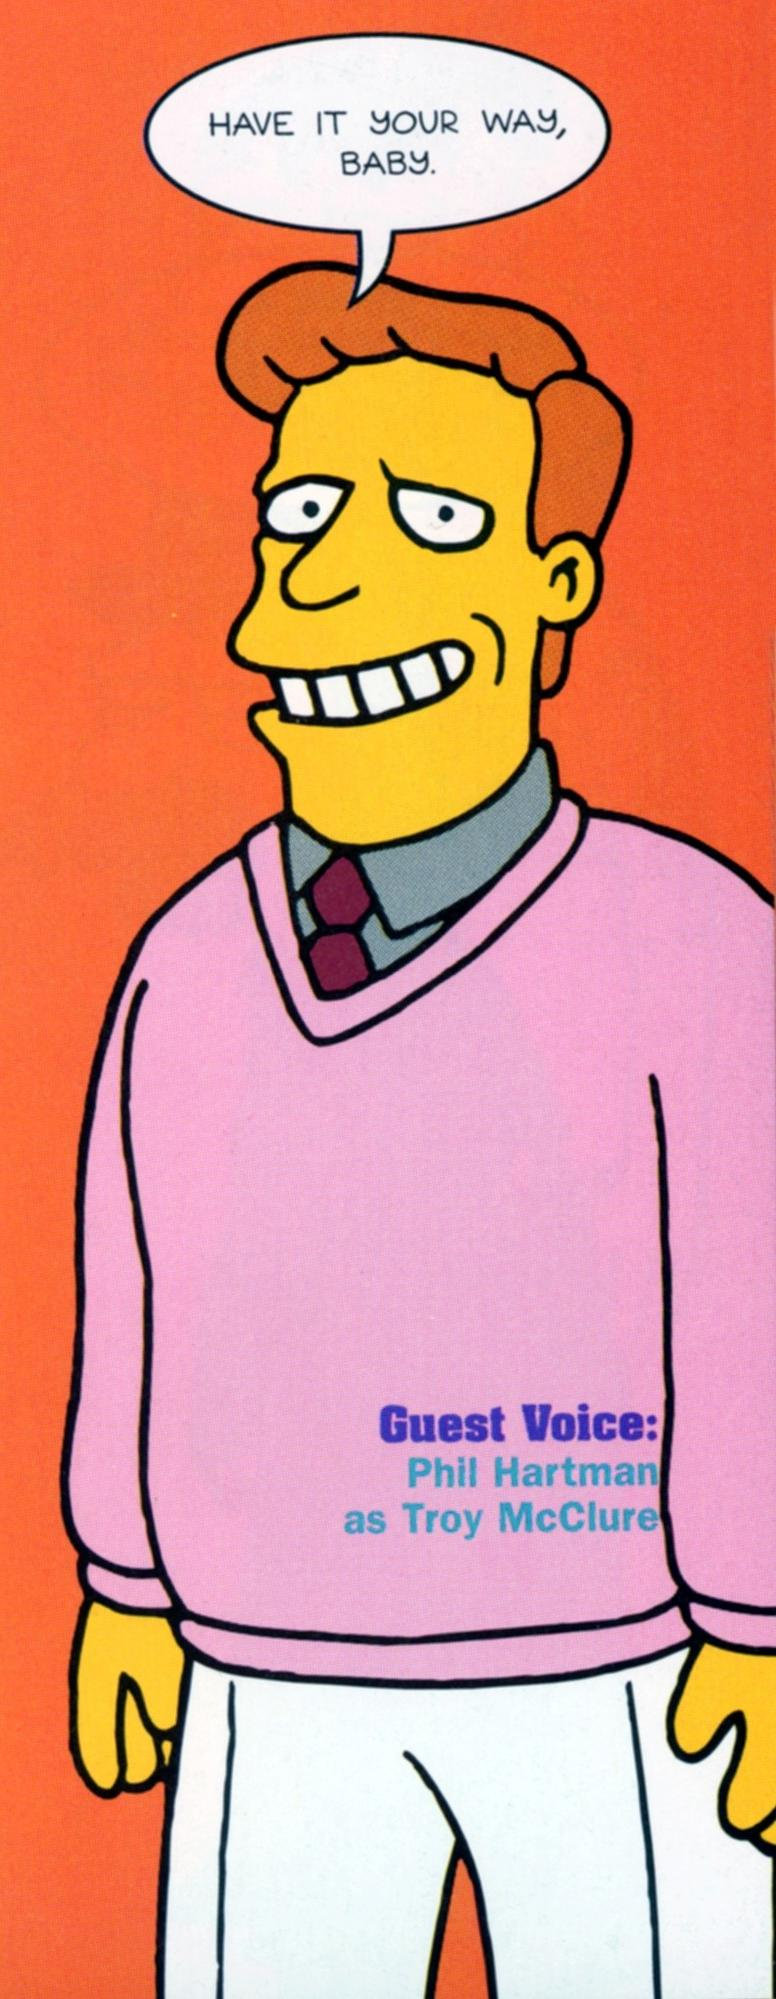 Phil Hartman was the voice of Troy McClure, a character on